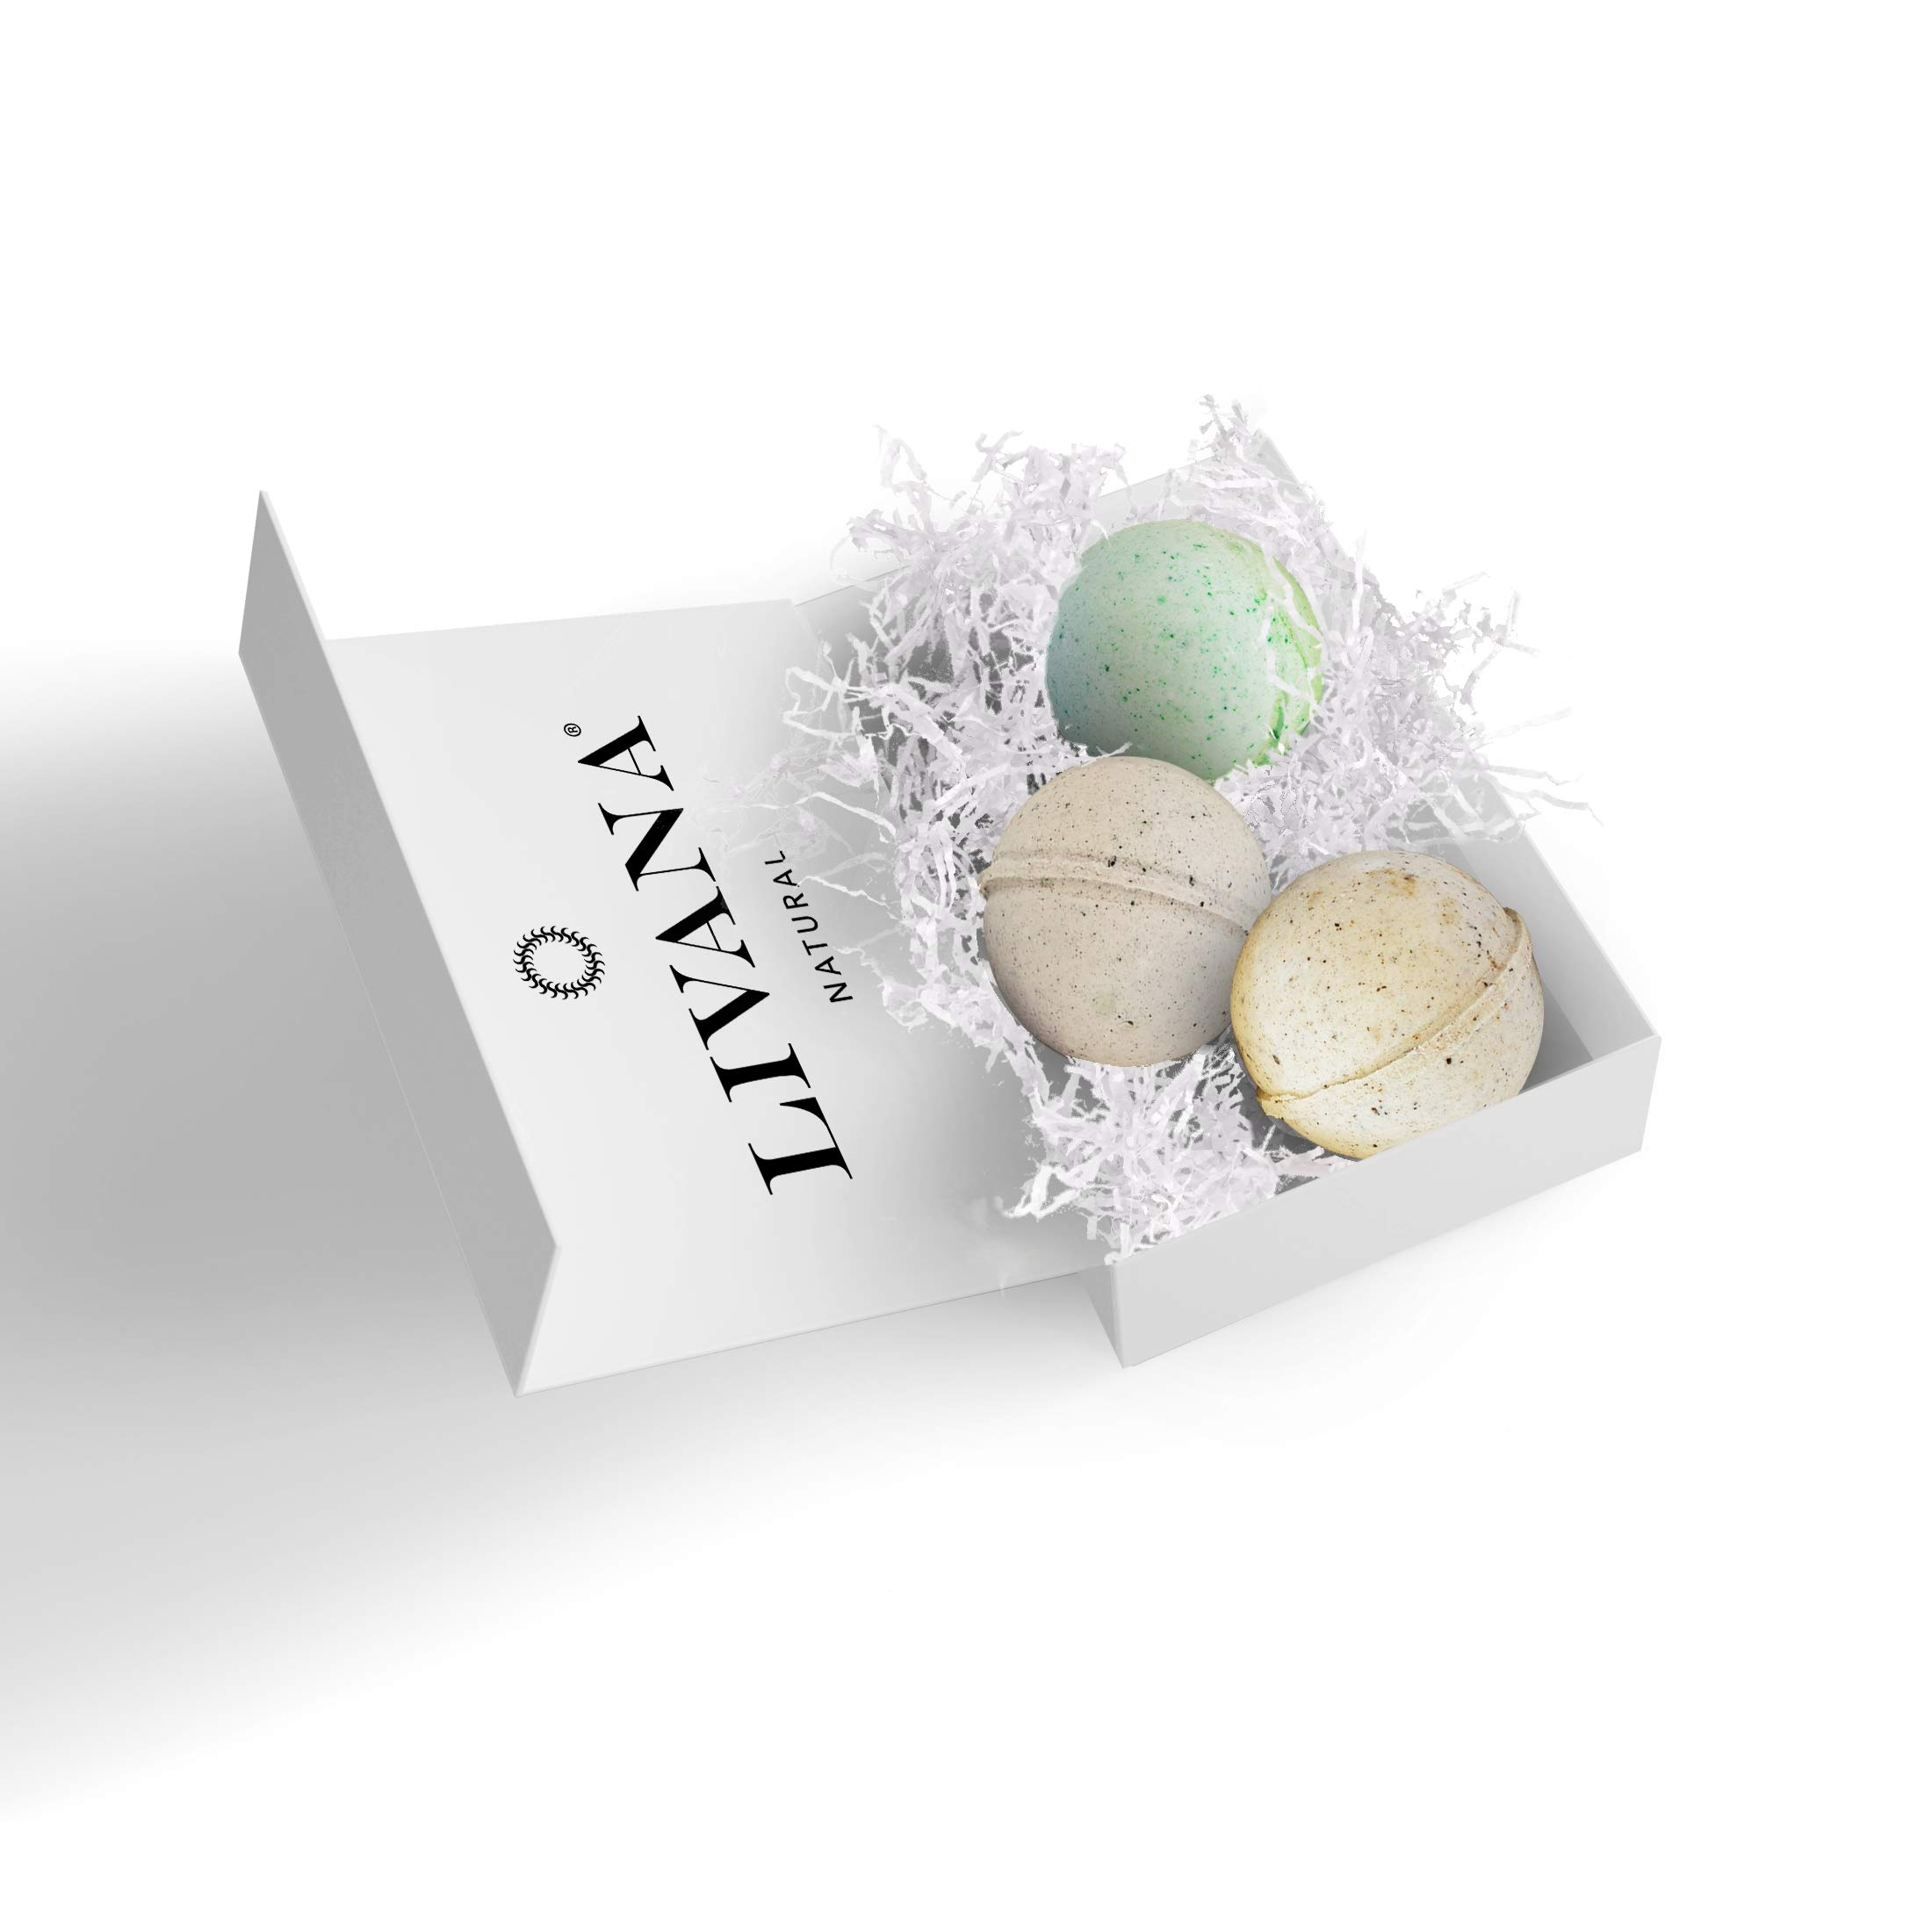 Pure Health Bath Bombs Gift Set made in the USA, Moisturizes, Perfect for Bubble & Spa Bath. Handmade Birthday, Gift ideas For Her/Him, mom, wife, girlfriend